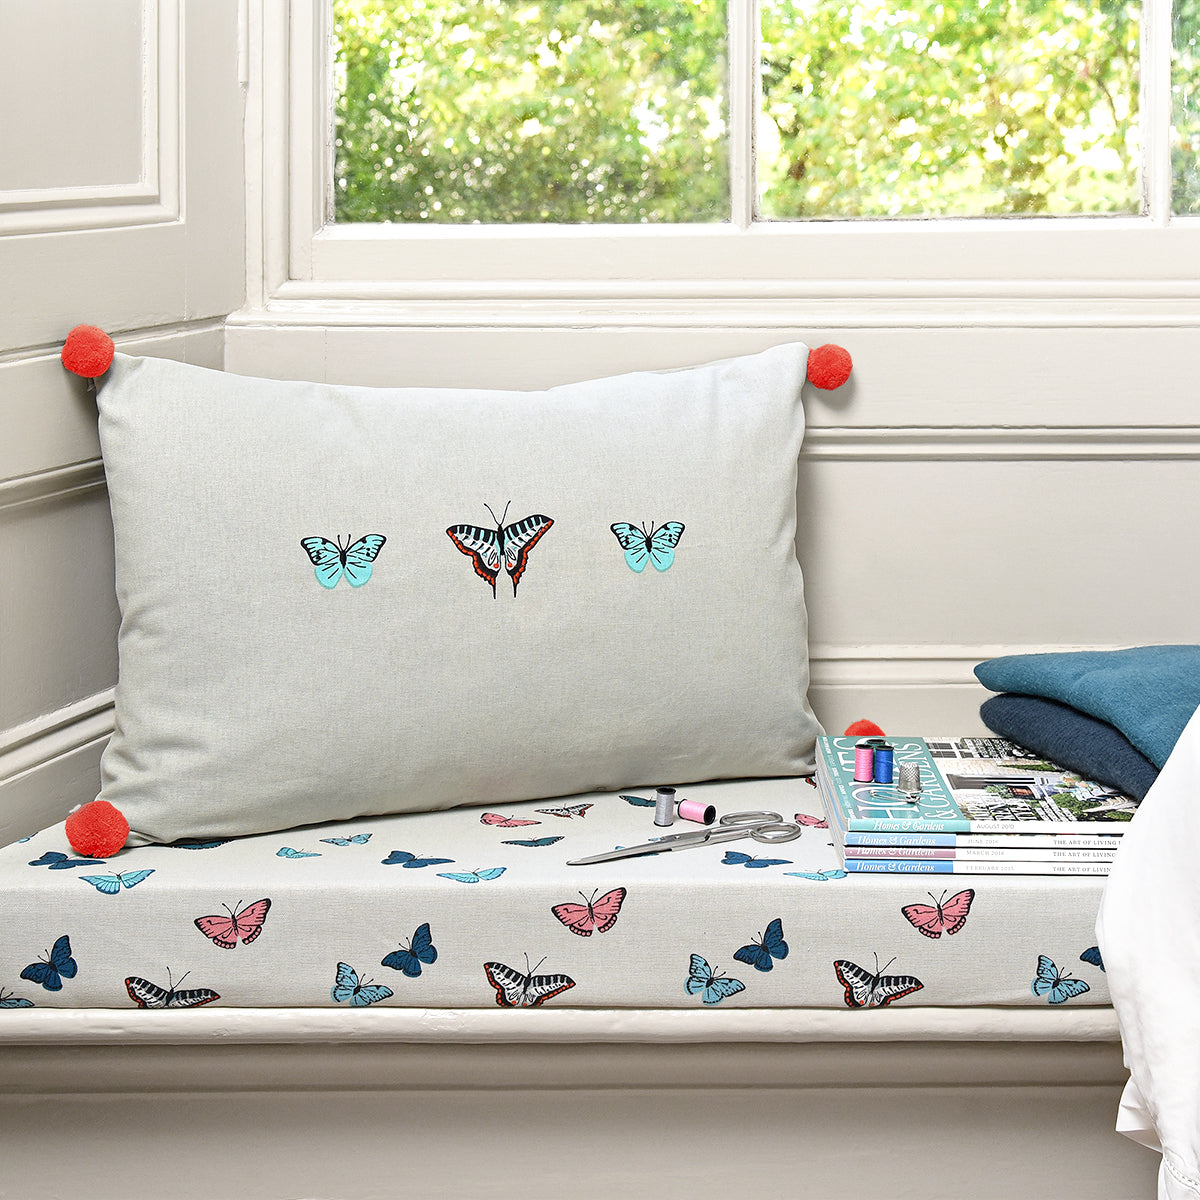 Butterflies Cushion by Sophie Allport with pink pom pom detailing.